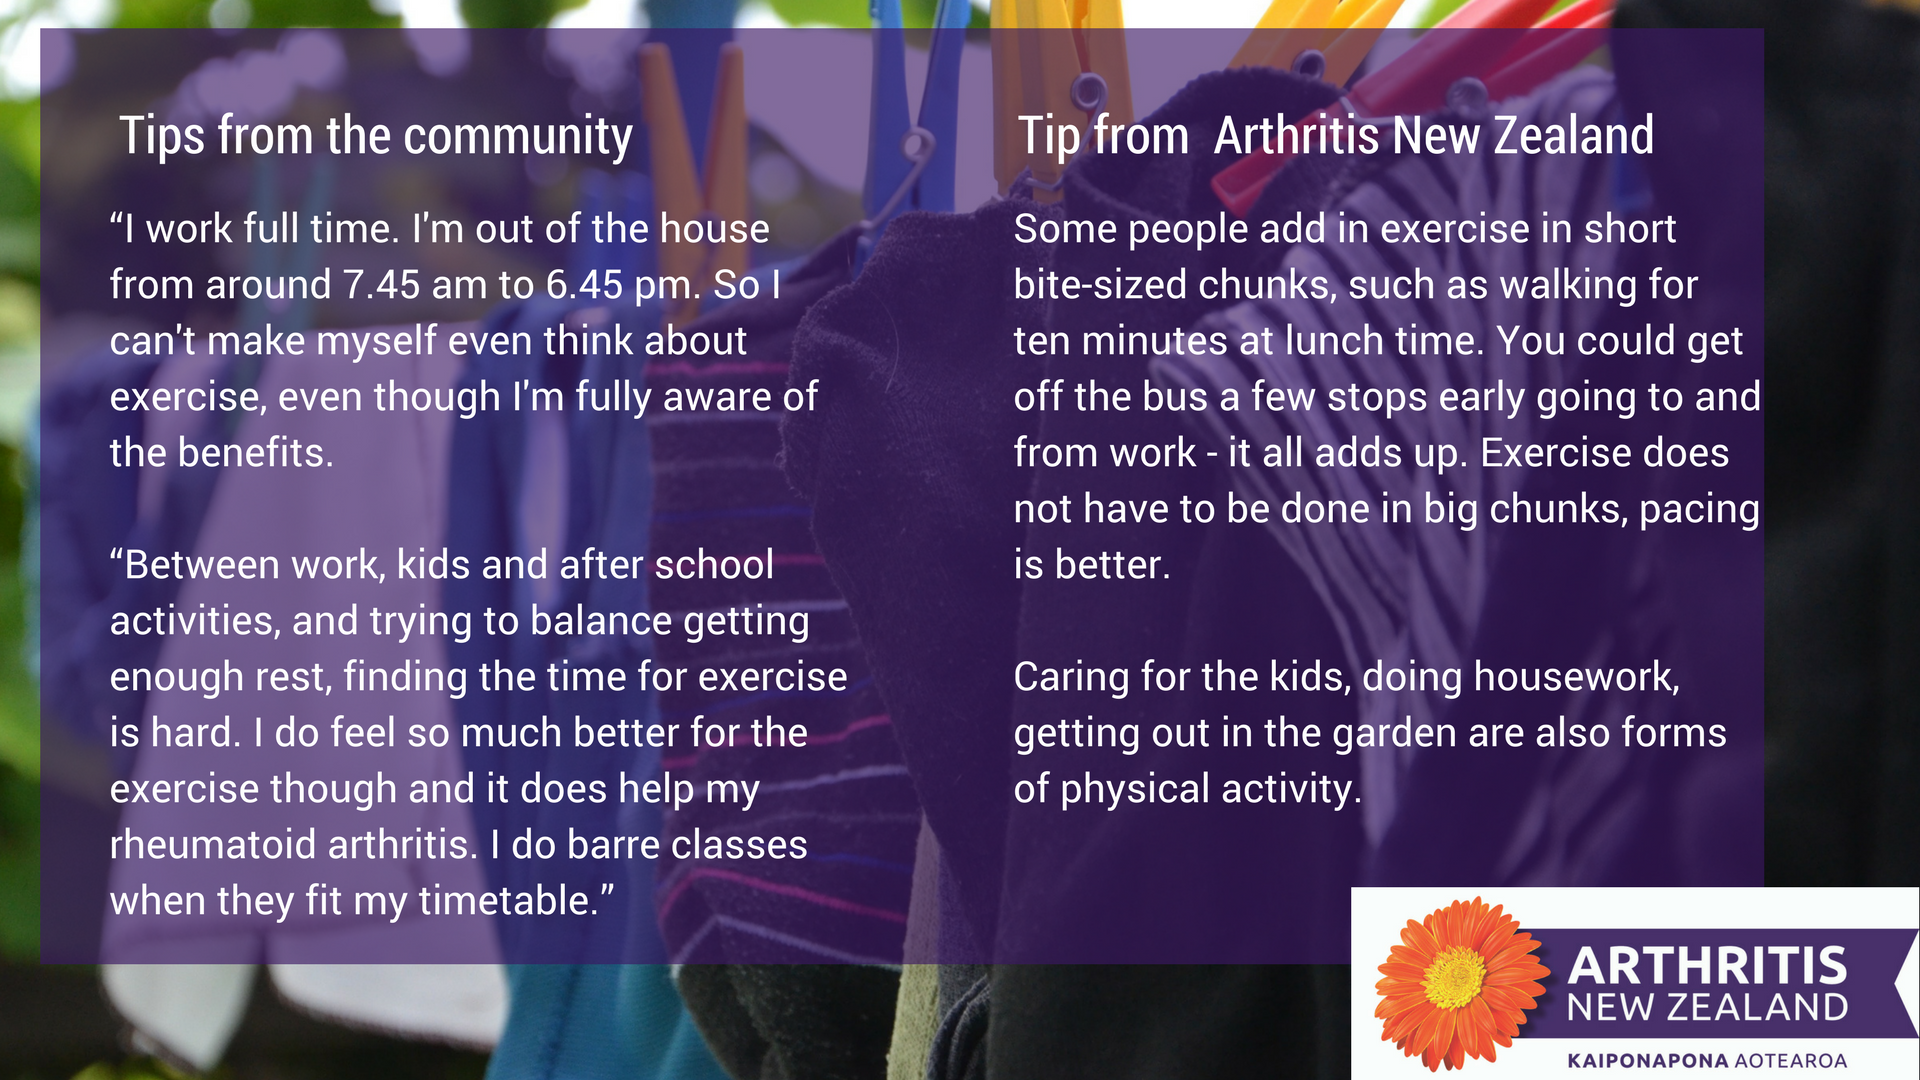 8 - Exercise tips from the Arthritis New Zealand community